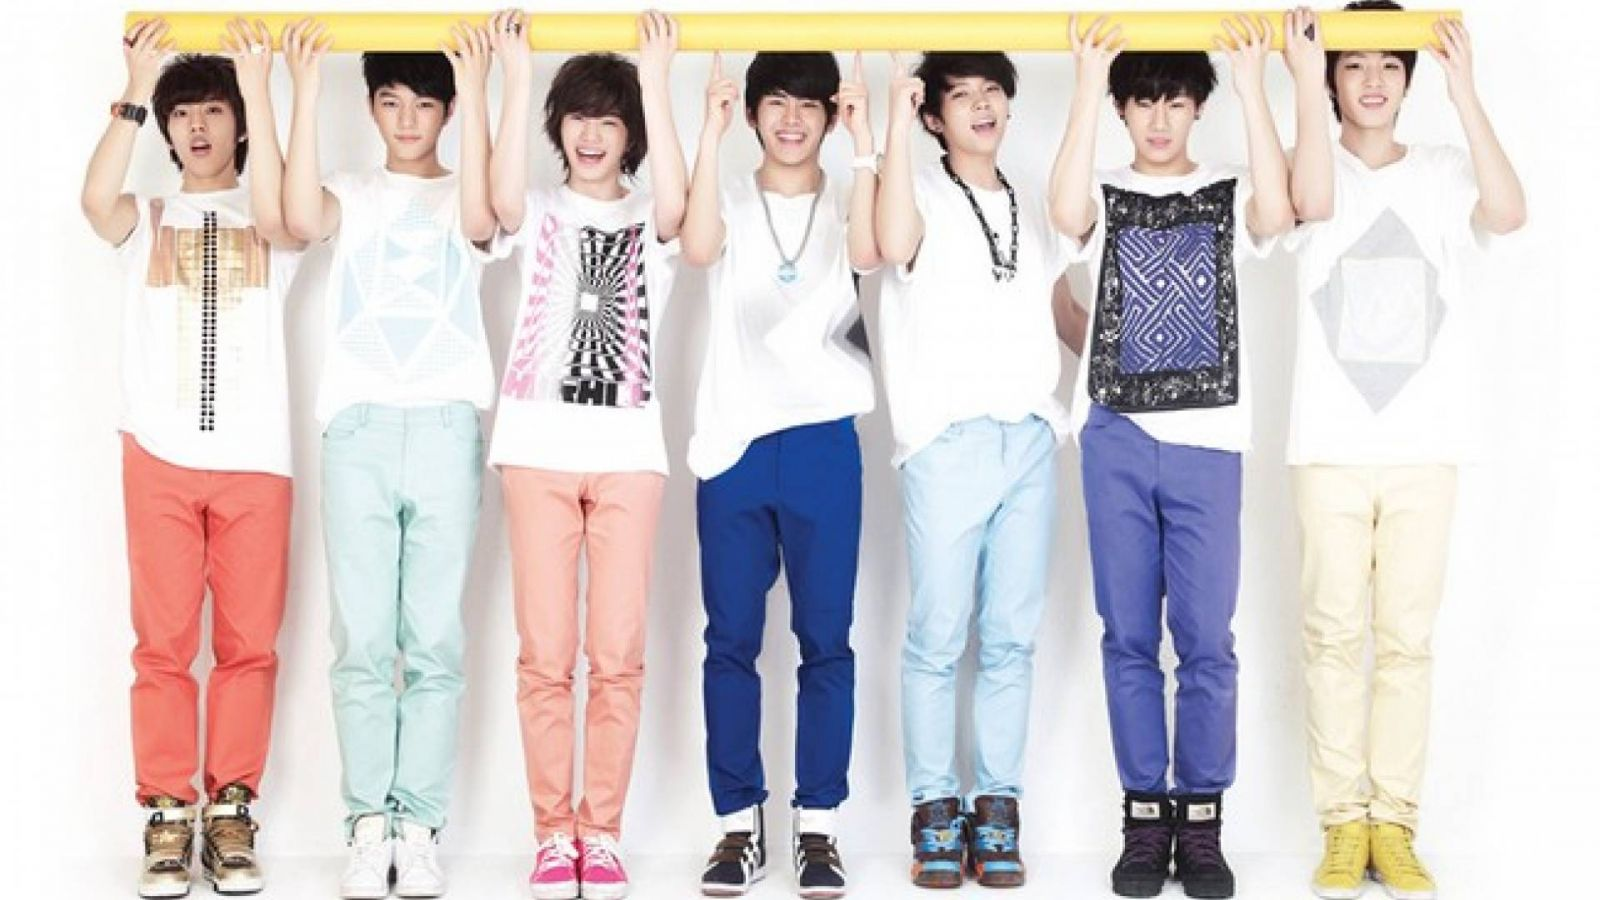 INFINITE © Woollim entertainment - Infinite